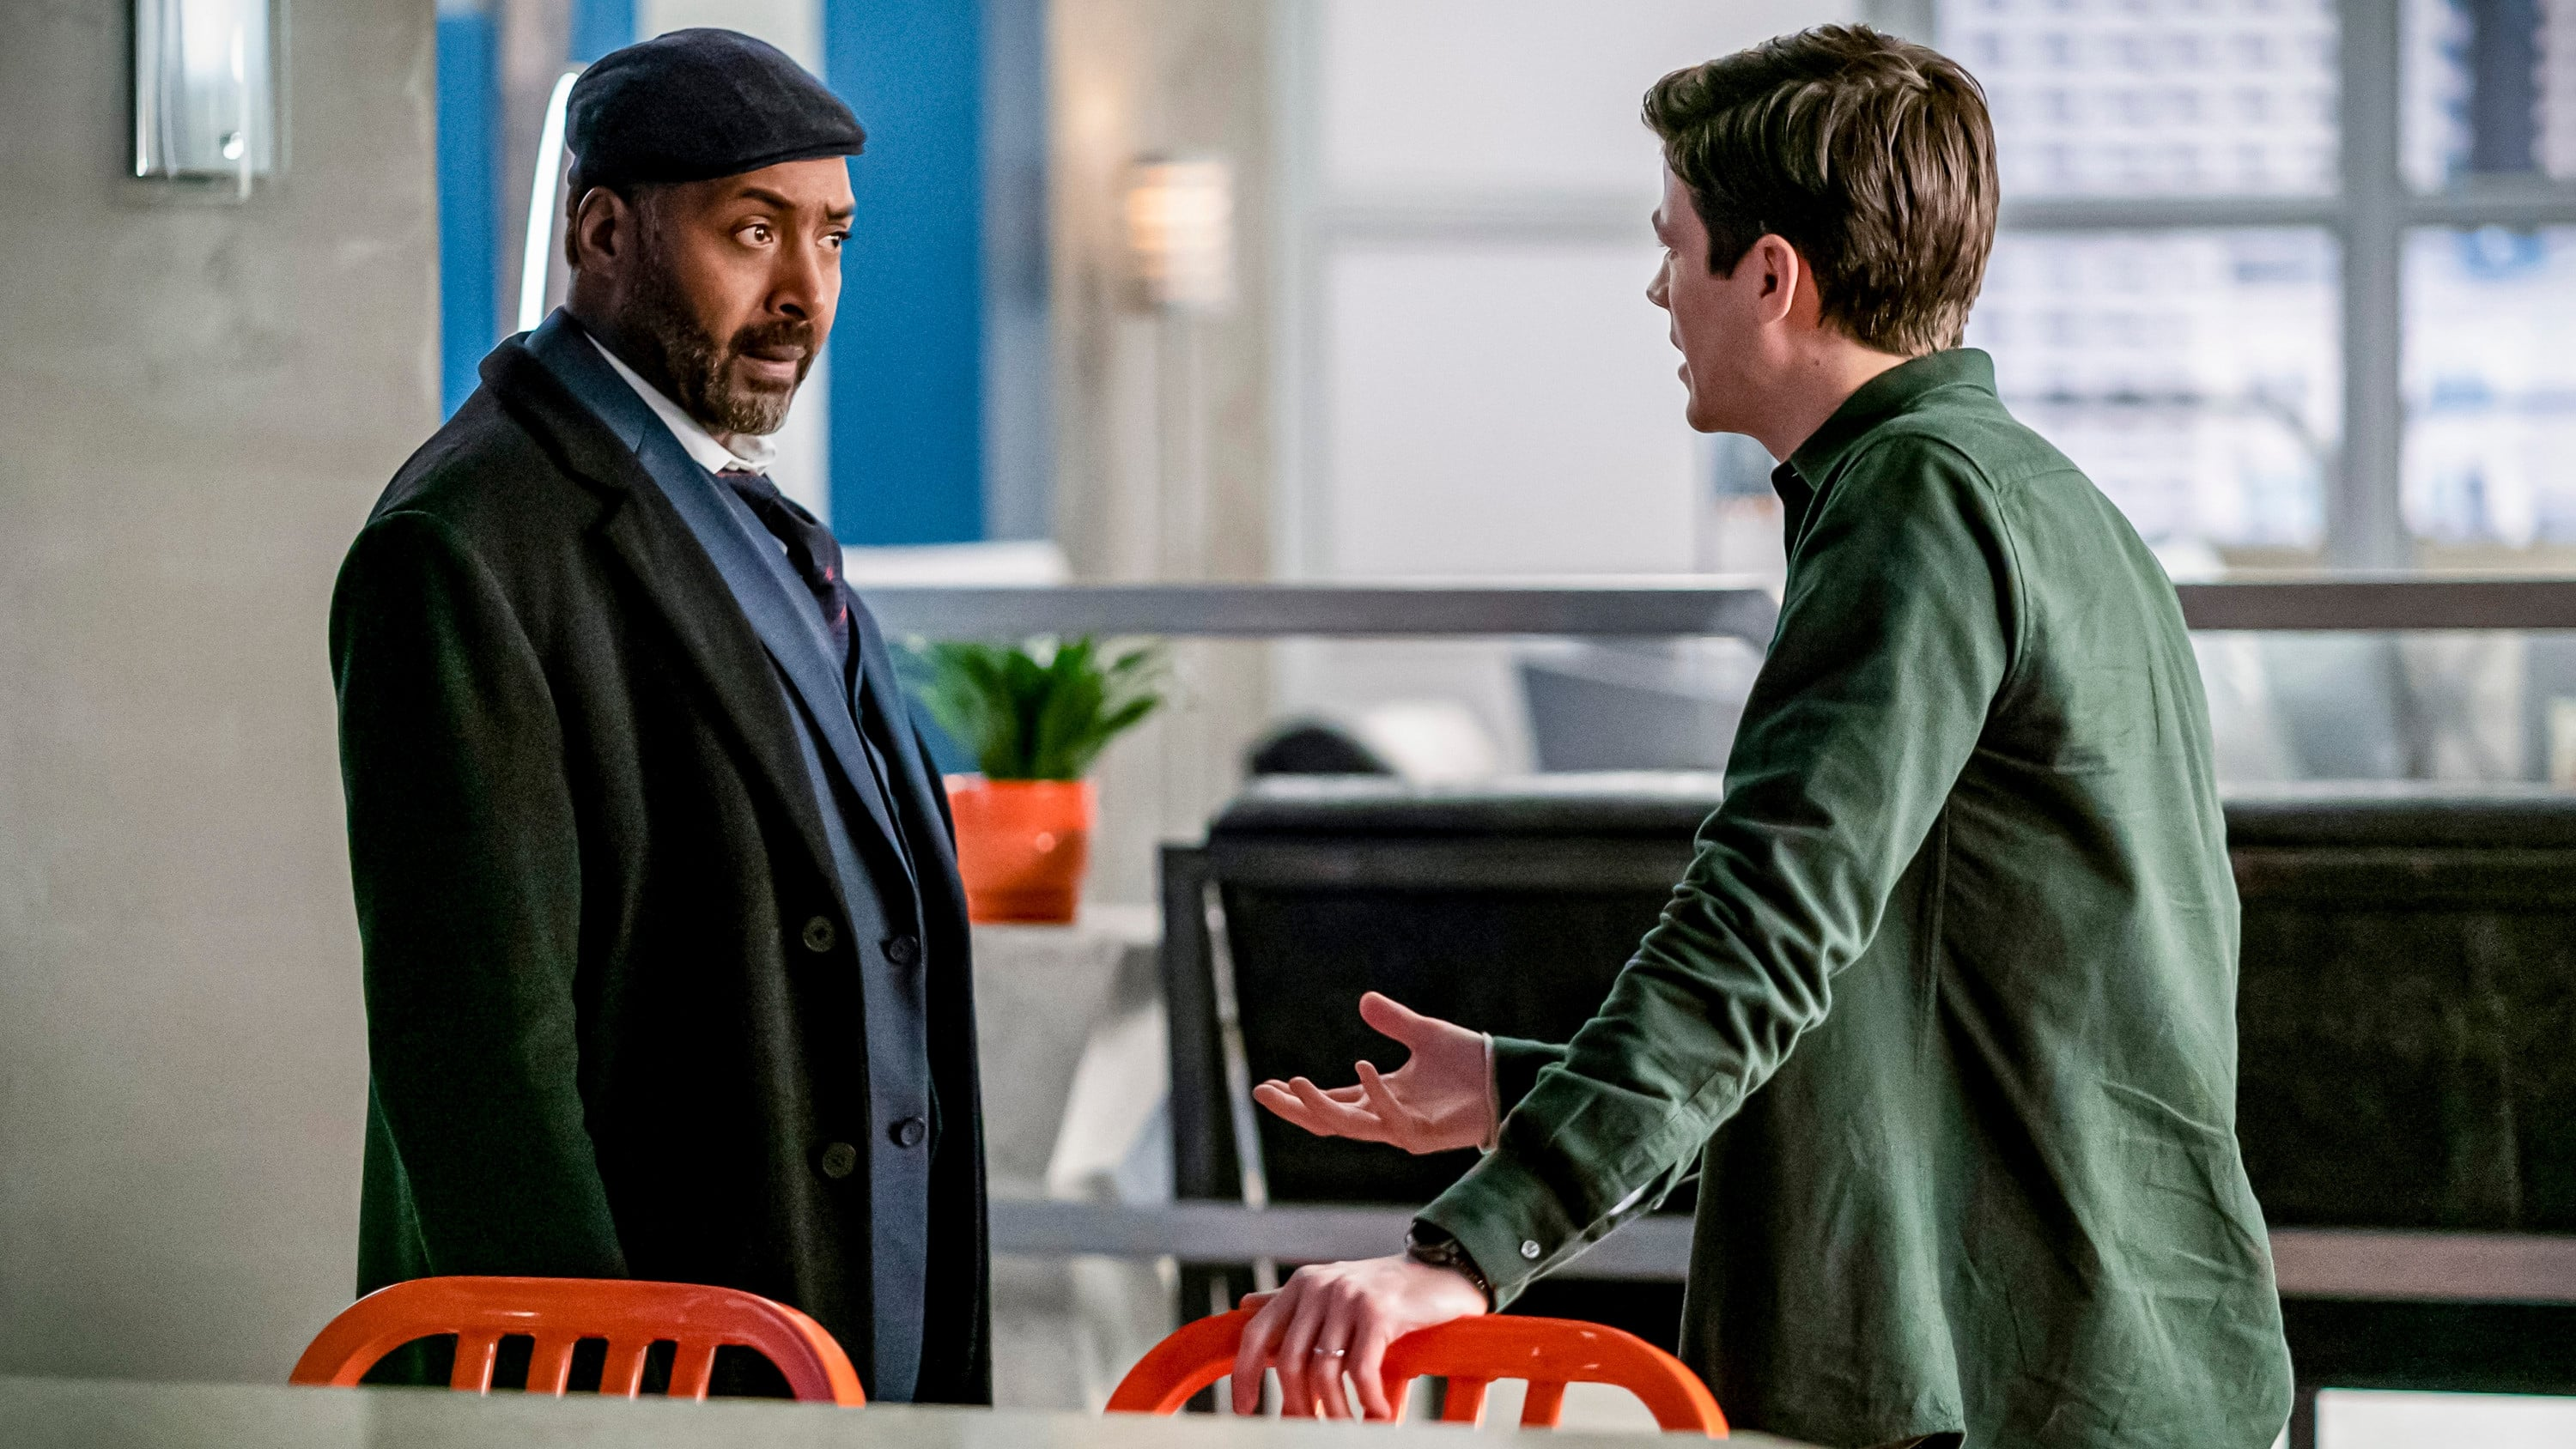 The Flash - Season 6 Episode 16 : So Long and Goodnight